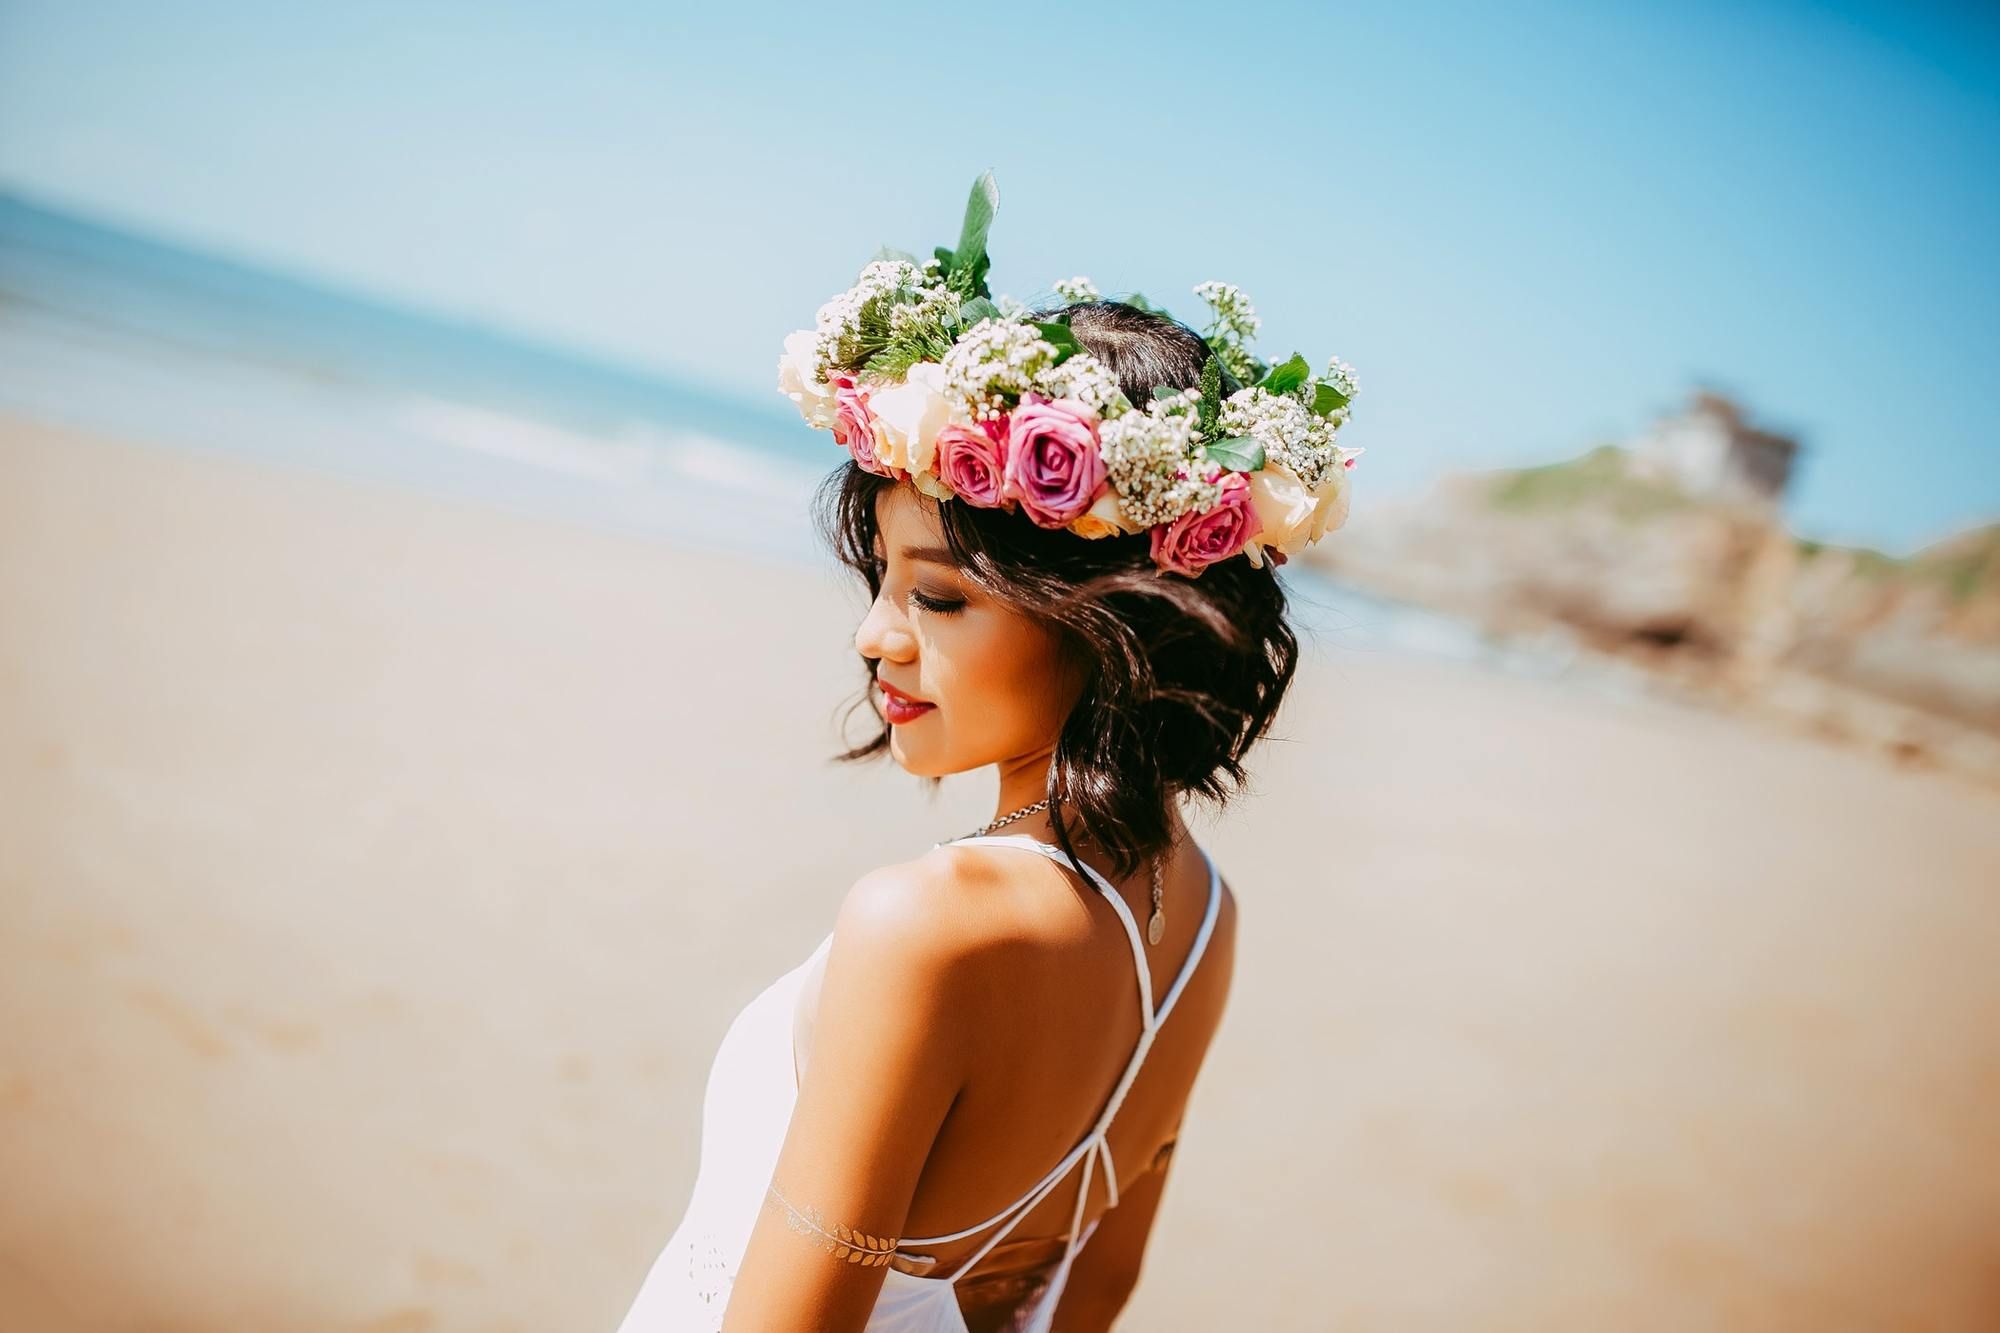 national rose month: rose crown